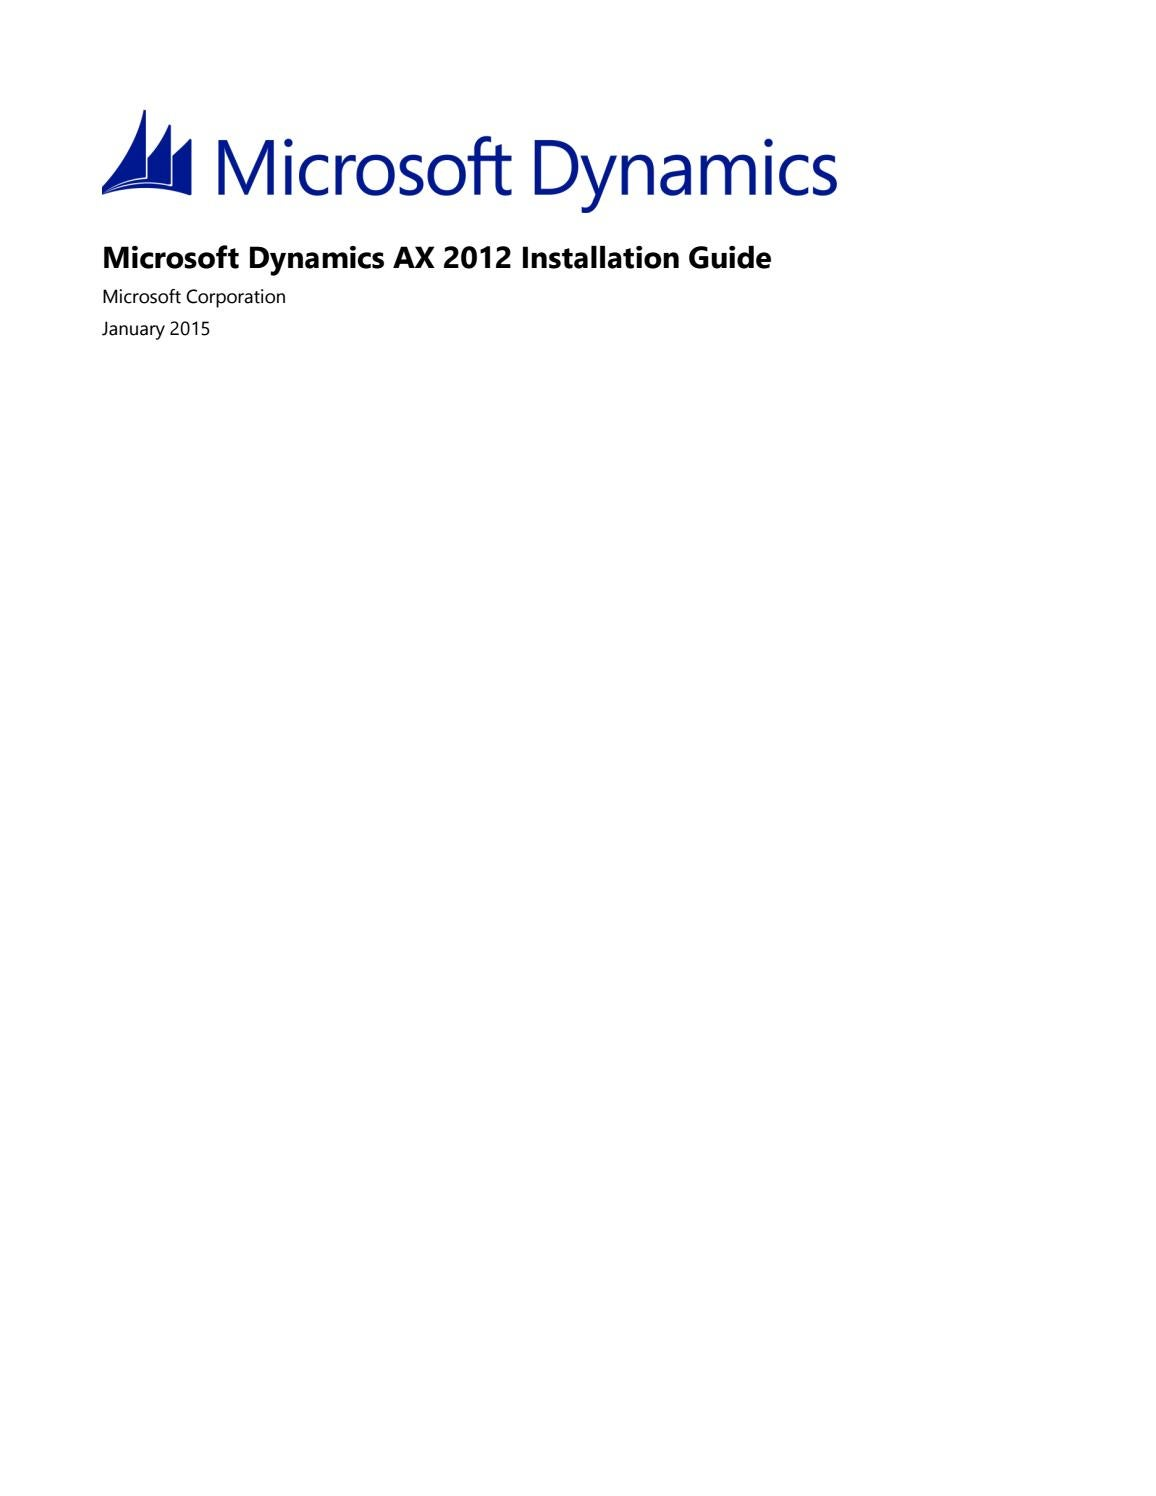 Microsoft Dynamics AX 2012 - Installation guide by ANEGIS